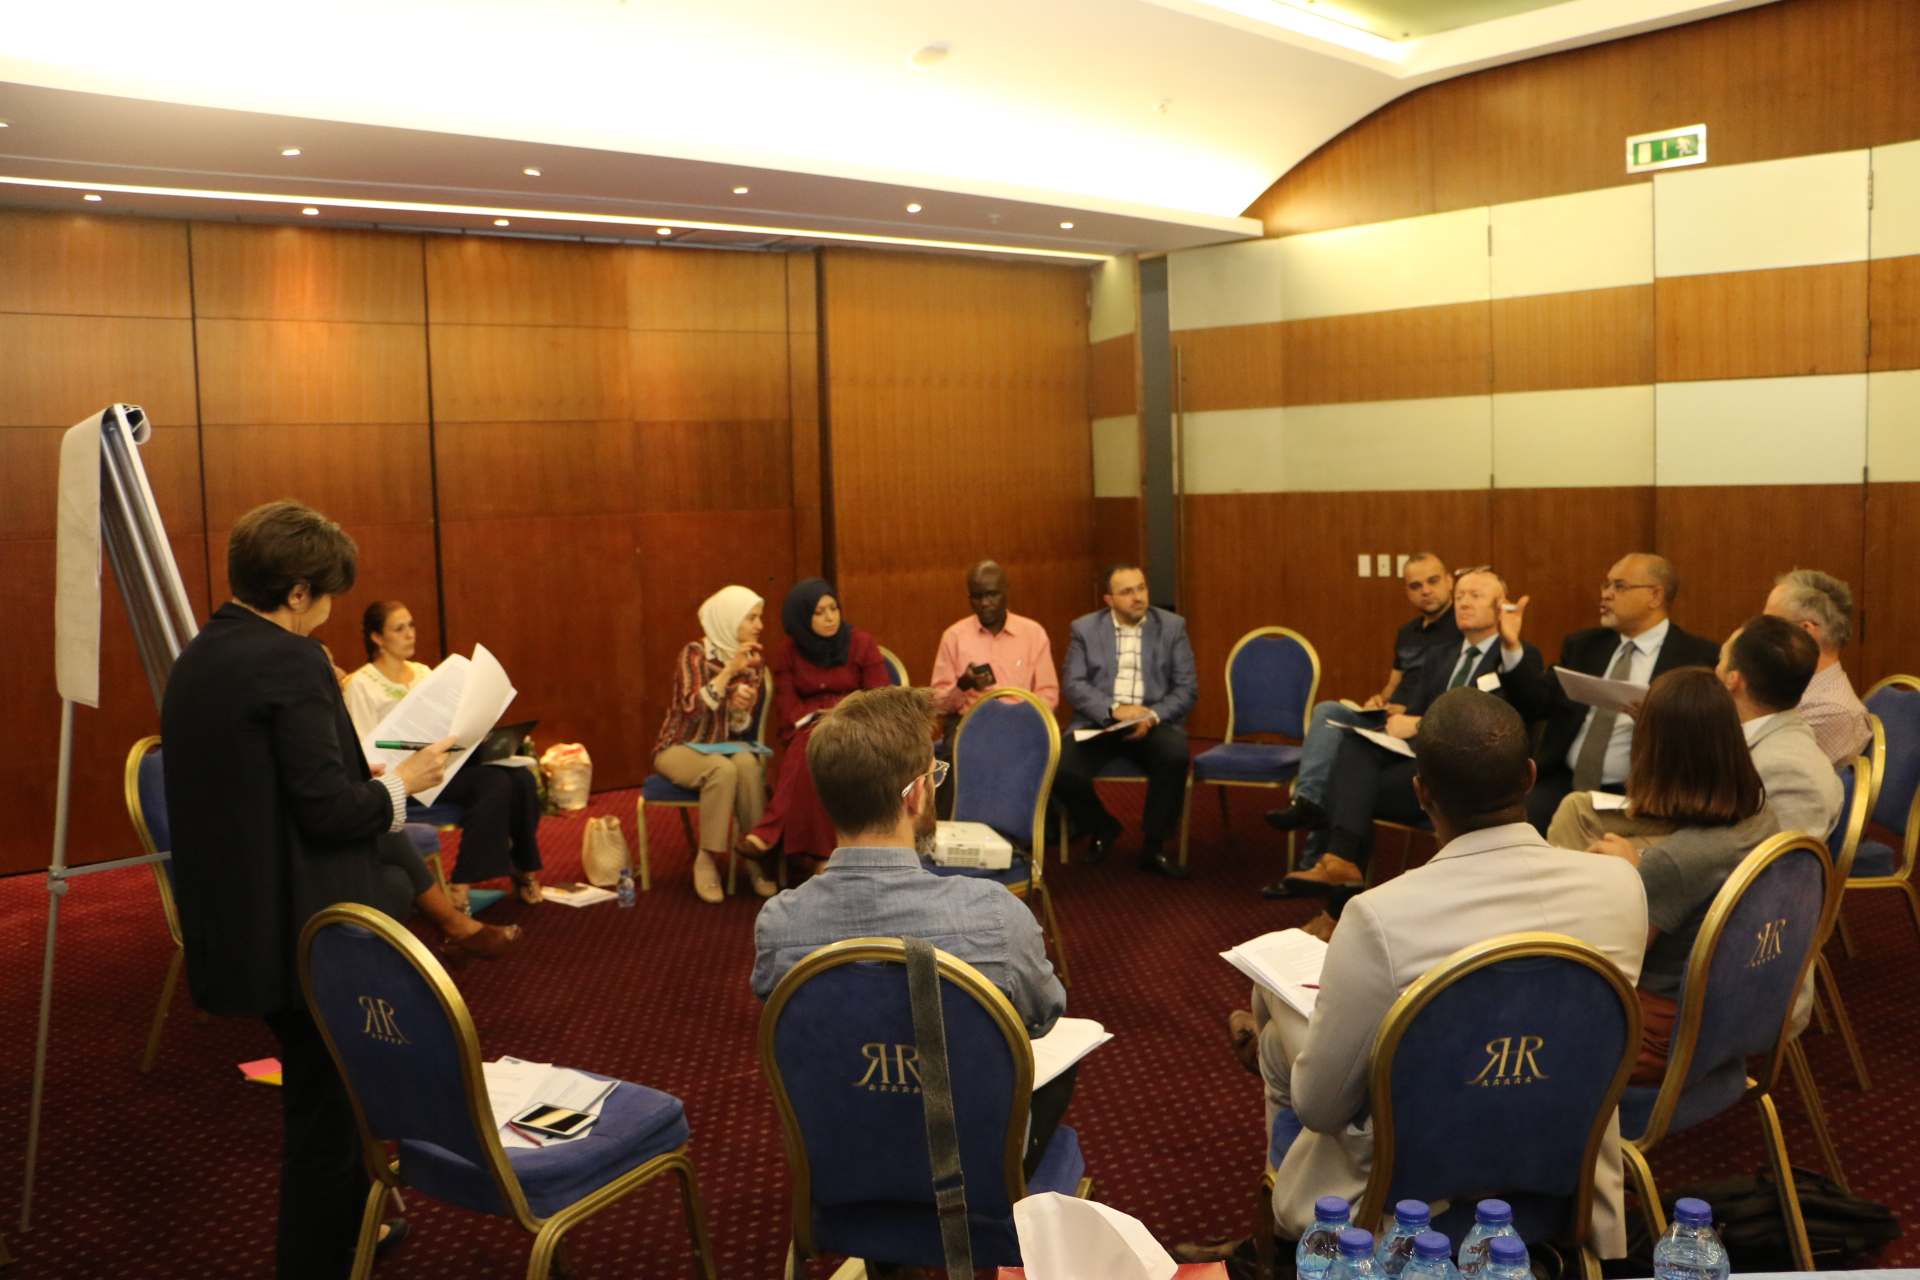 Middle East Regional Conference on Localisation - Day 2 - Group Discussions - 2